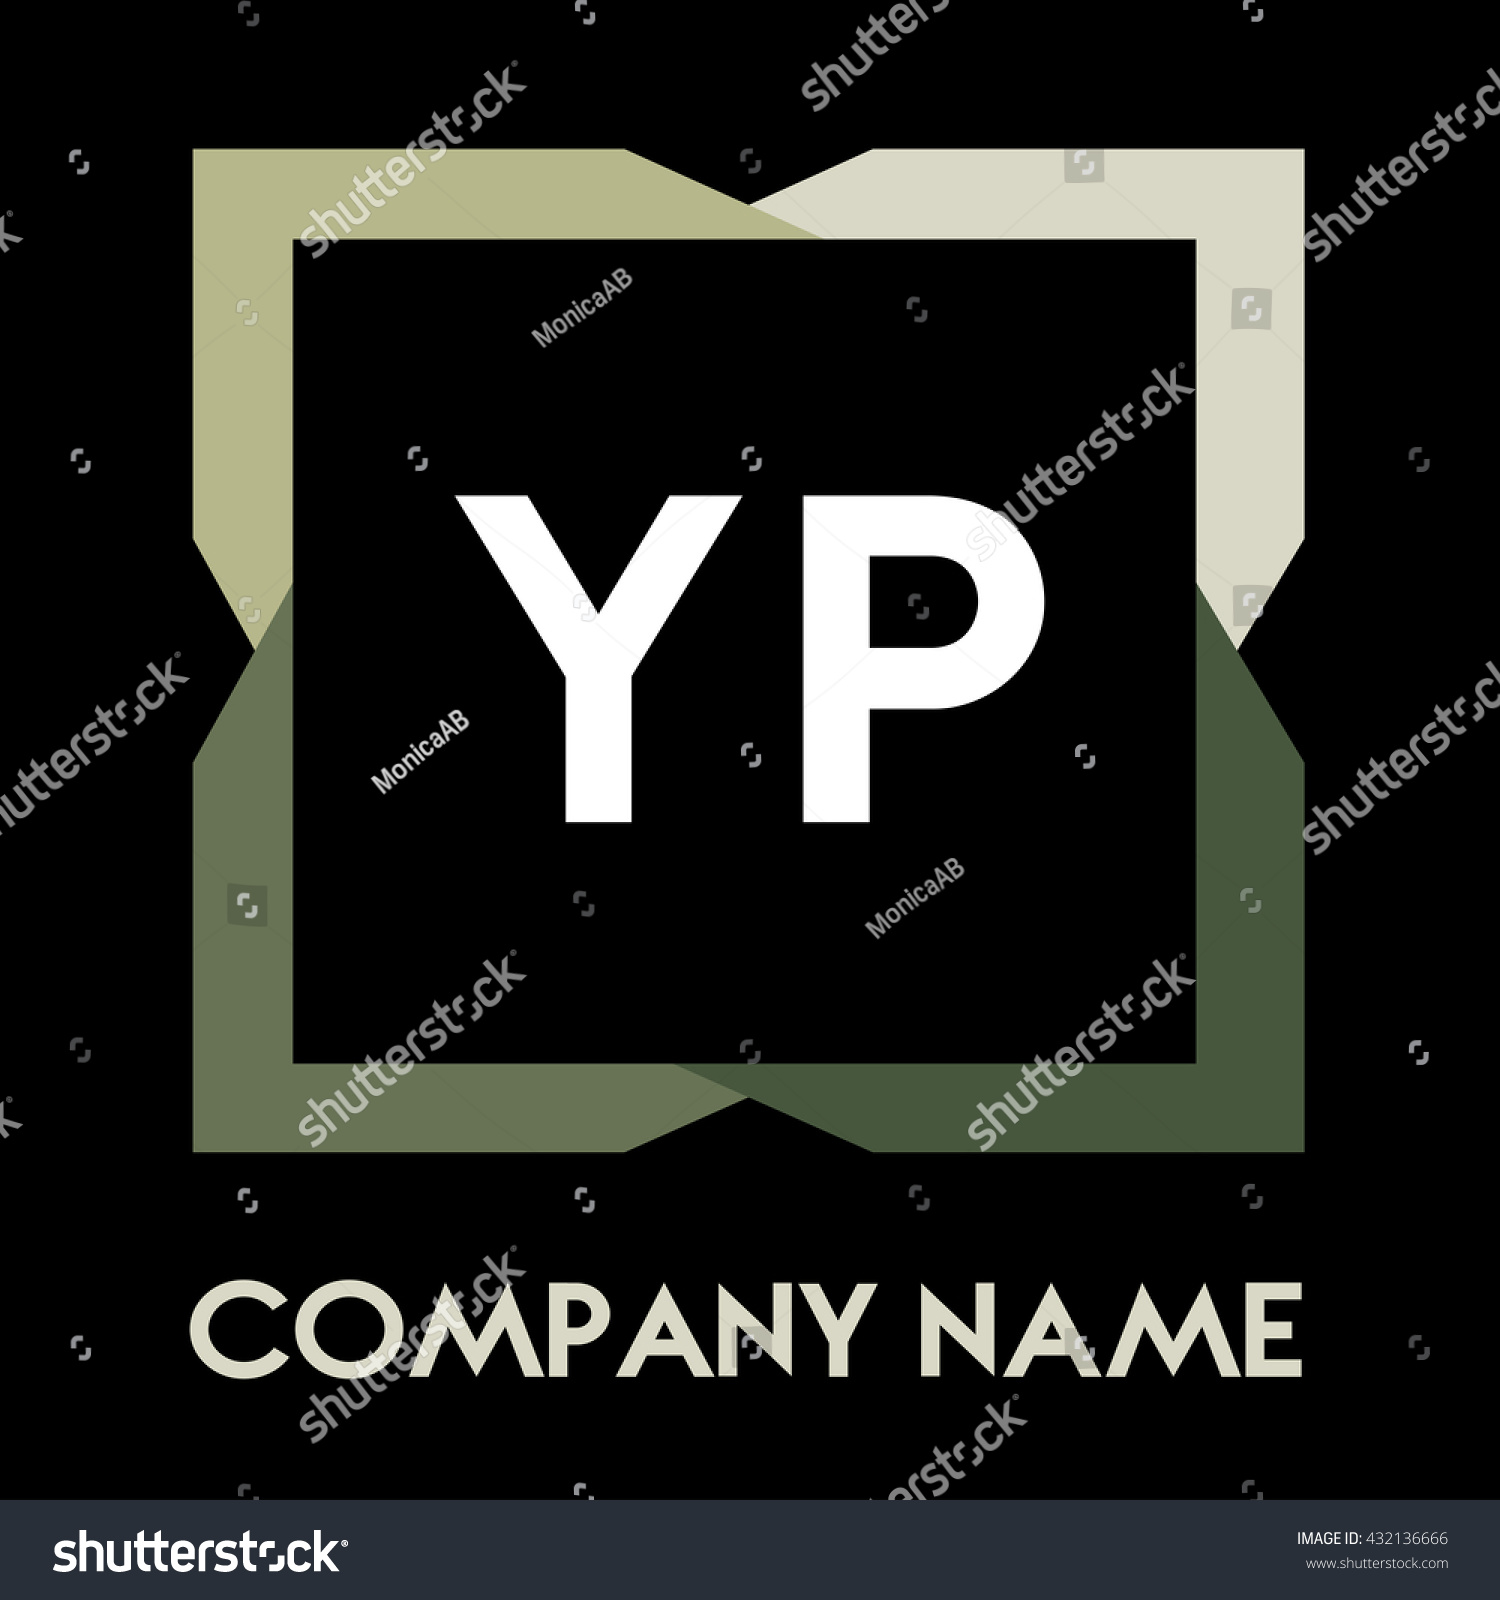 Yp Letters Business Logo Creative Icon Stock Vector Royalty 1500x1600